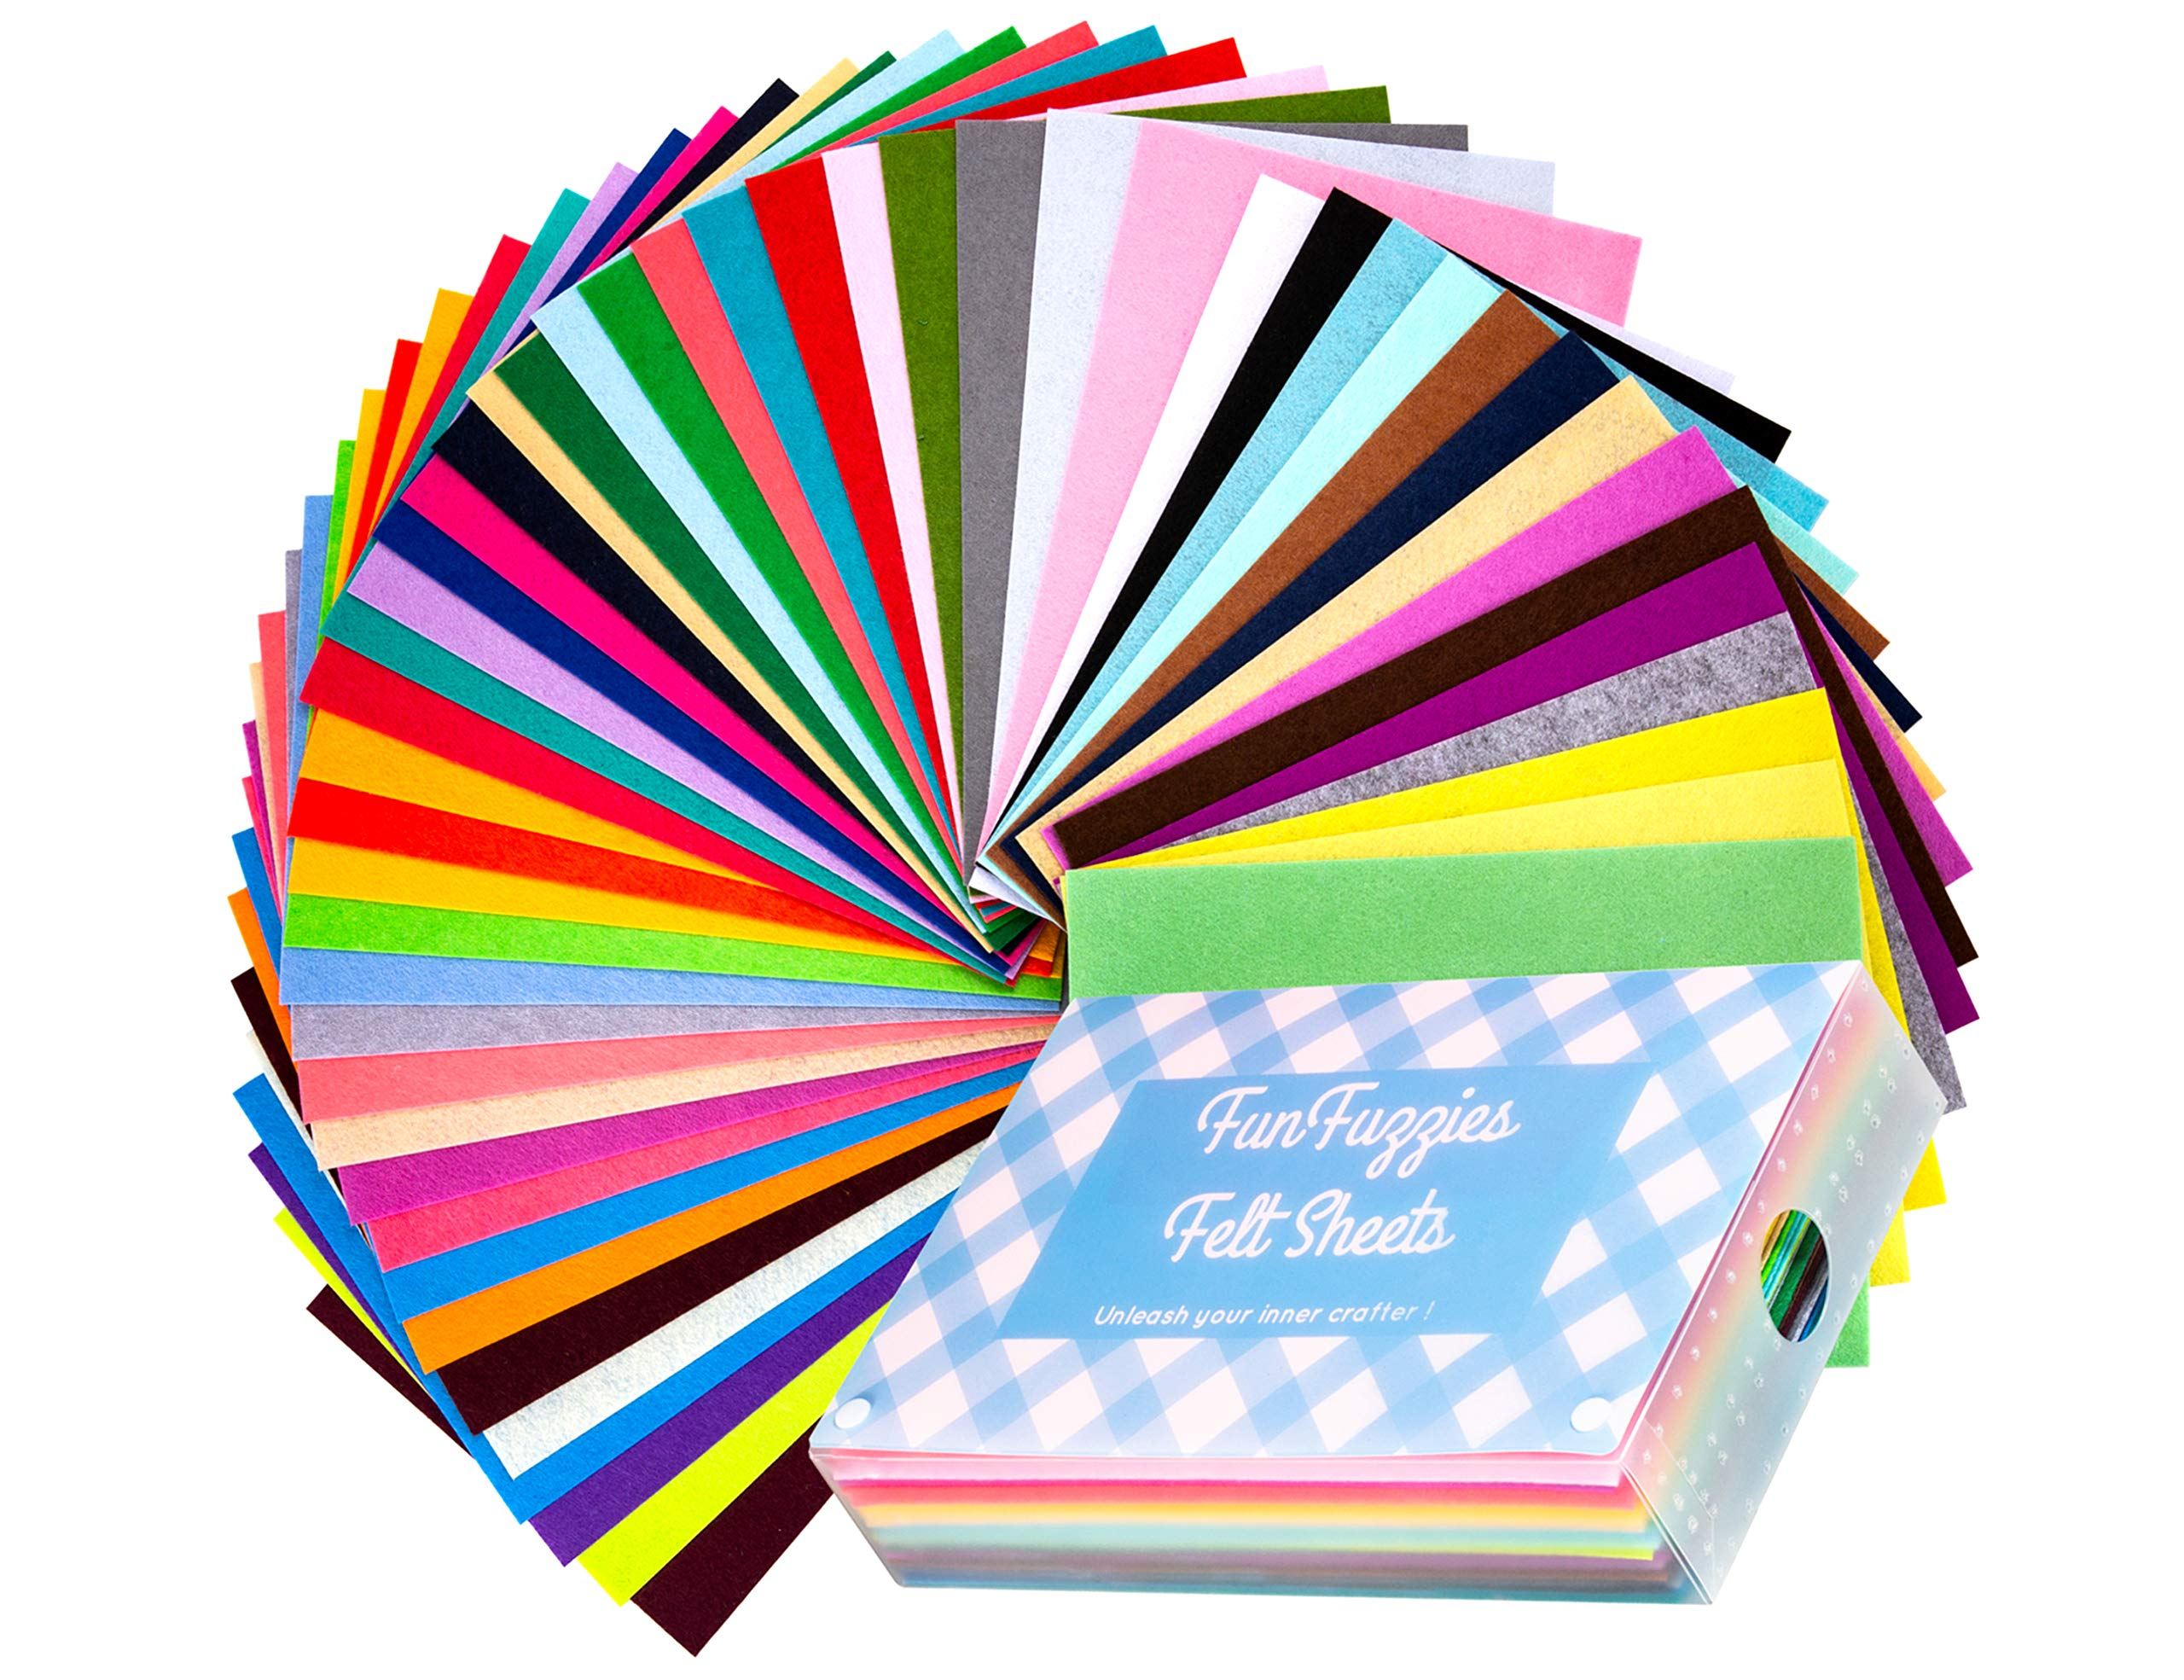 Assorted Stiff Felt Fabric Set: 50 Unique Sheets 8x12 inch (20x30cm) with Handy Storage Container Case; DIY Crafts, Sewing, Decorative Projects